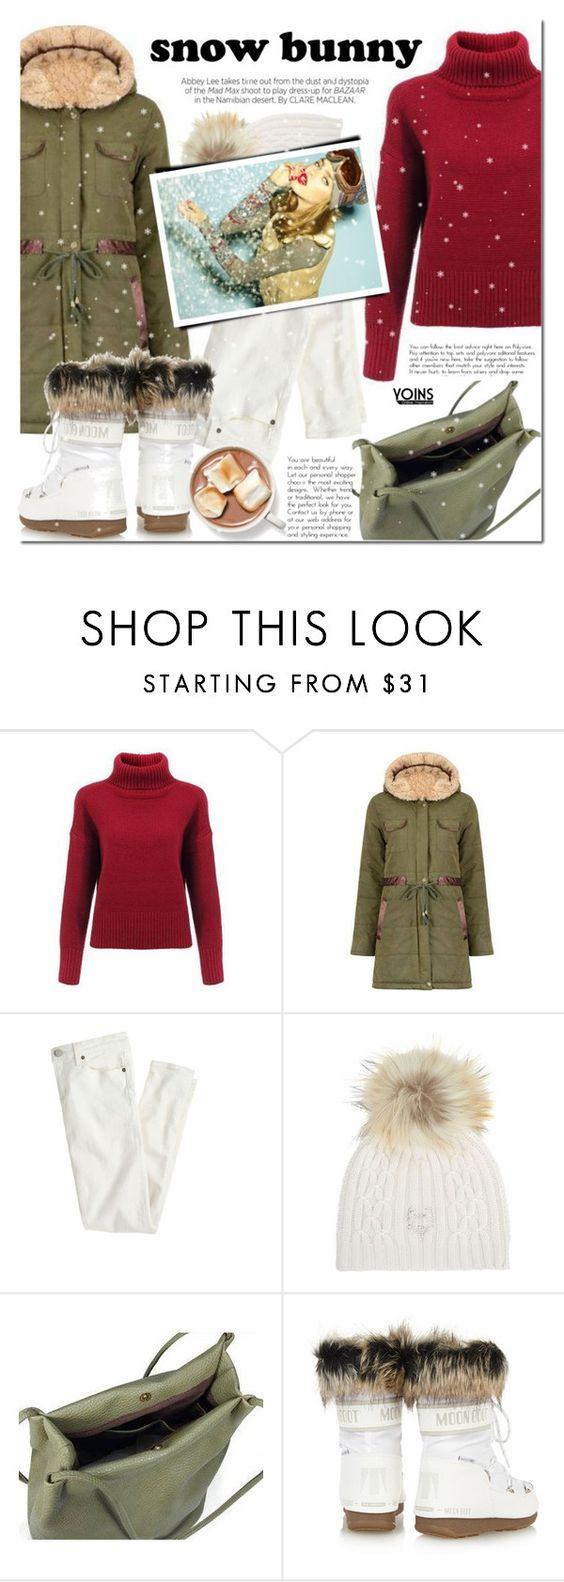 """""""Snow Bunny Style"""" by mada-malureanu ❤ liked on Polyvore featuring Kershaw, J.Crew, M. Miller, Moon Boot and snowbunny"""